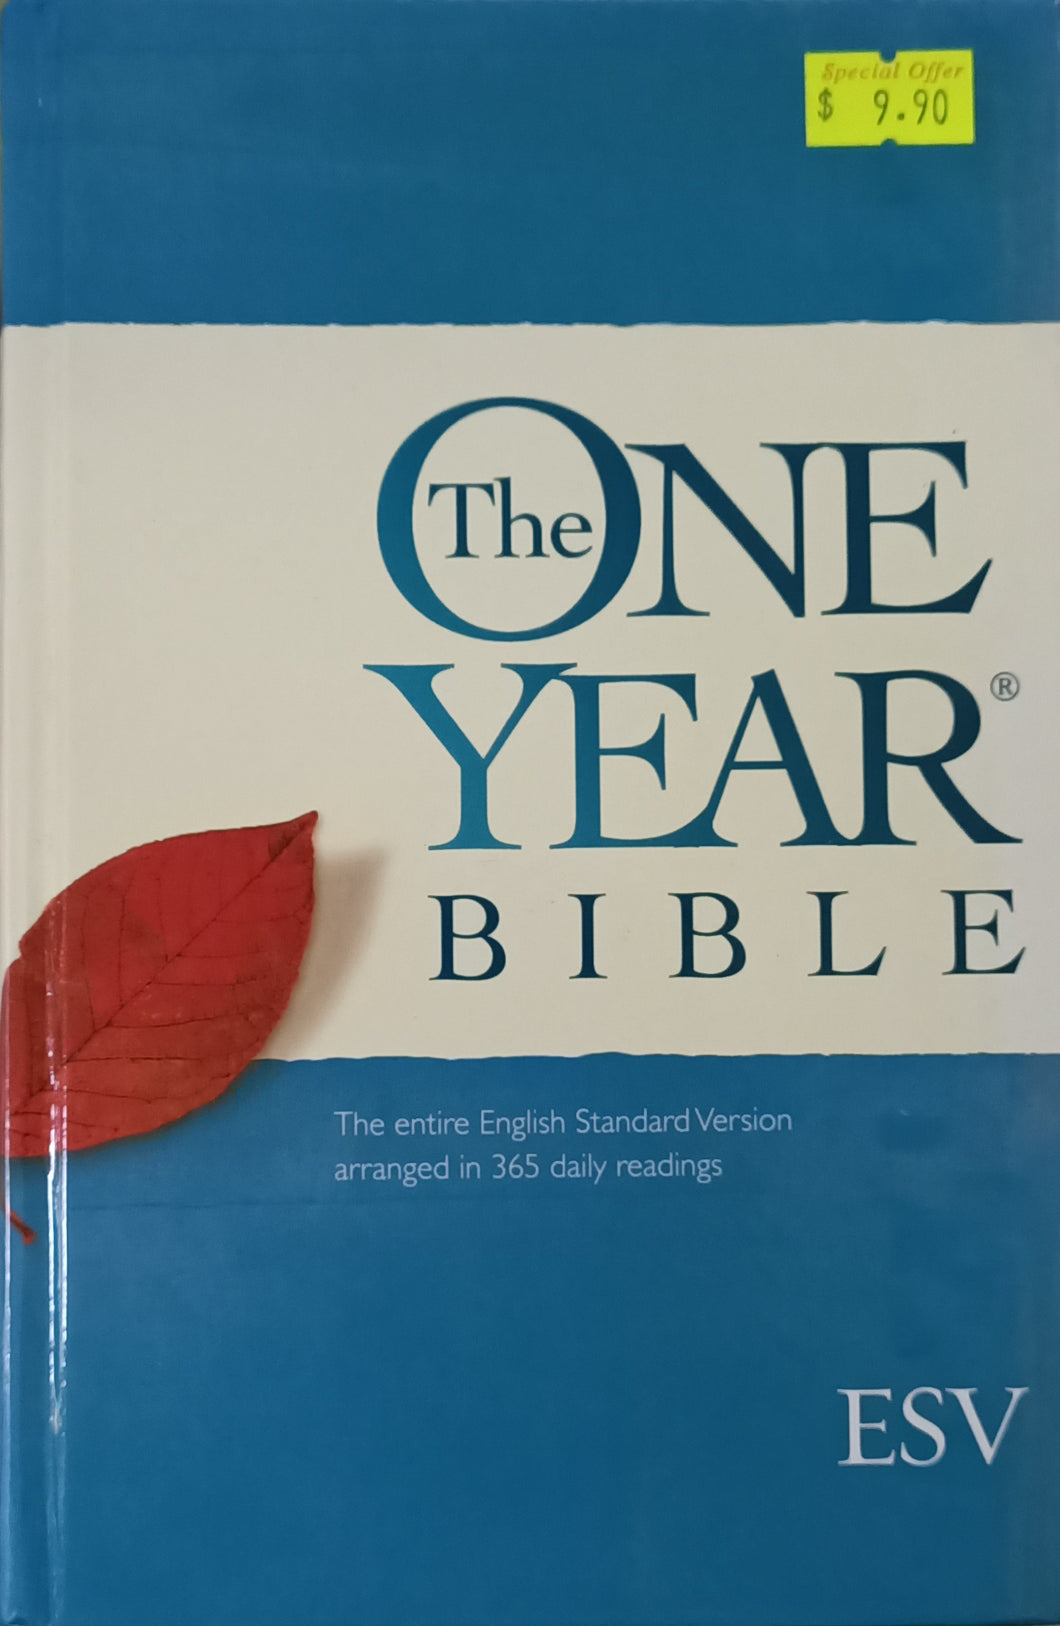 ESV The One Year Bible - Crossway books